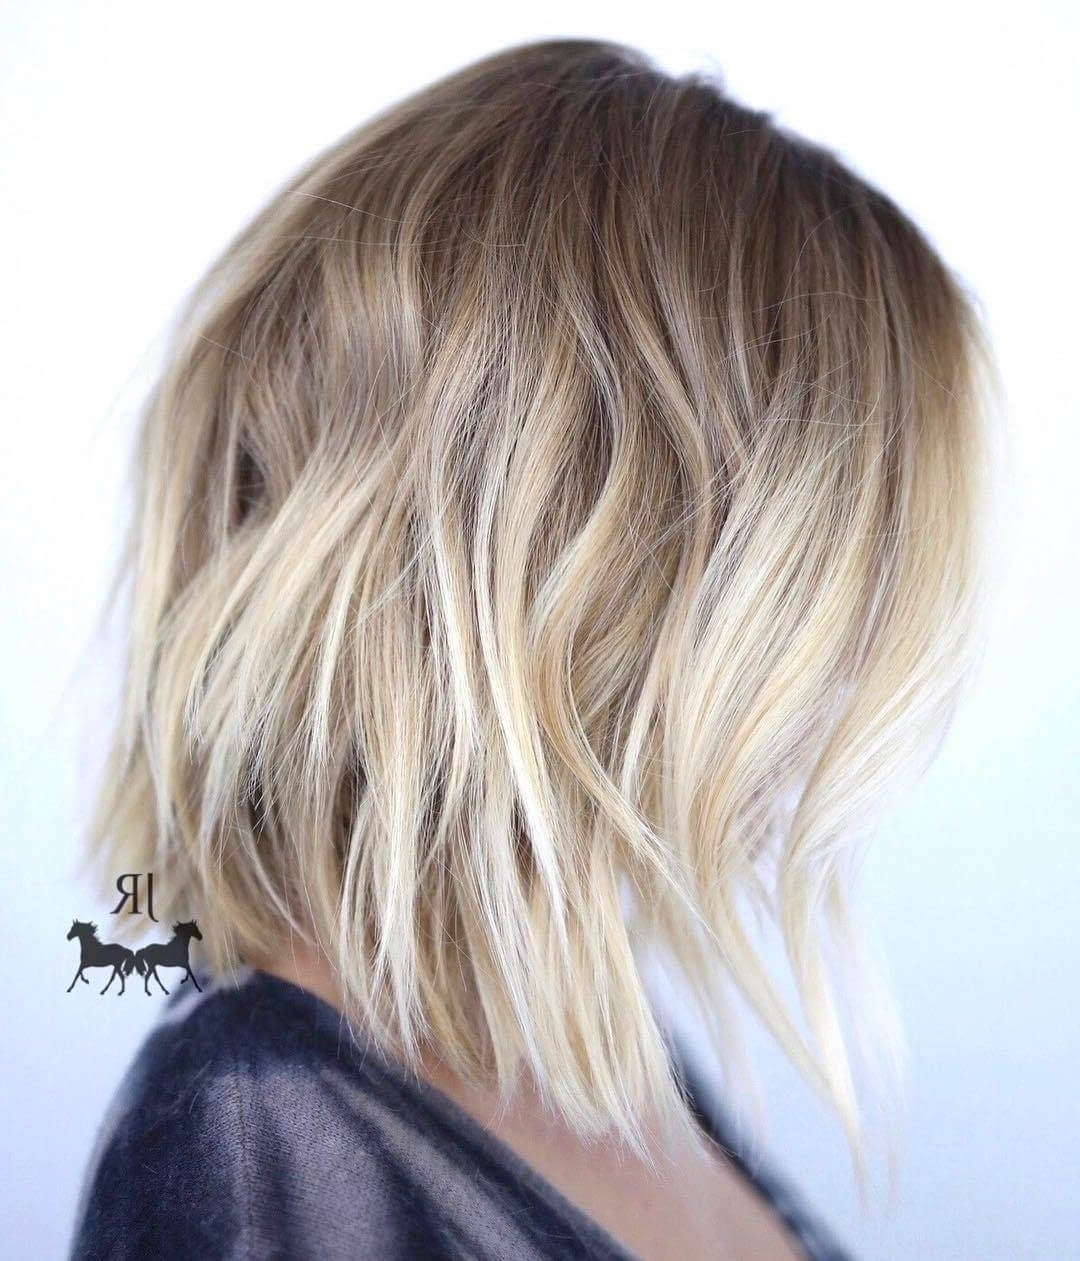 50 Fresh Short Blonde Hair Ideas To Update Your Style In 2018 Intended For Newest Casual Bright Waves Blonde Hairstyles With Bangs (View 6 of 20)